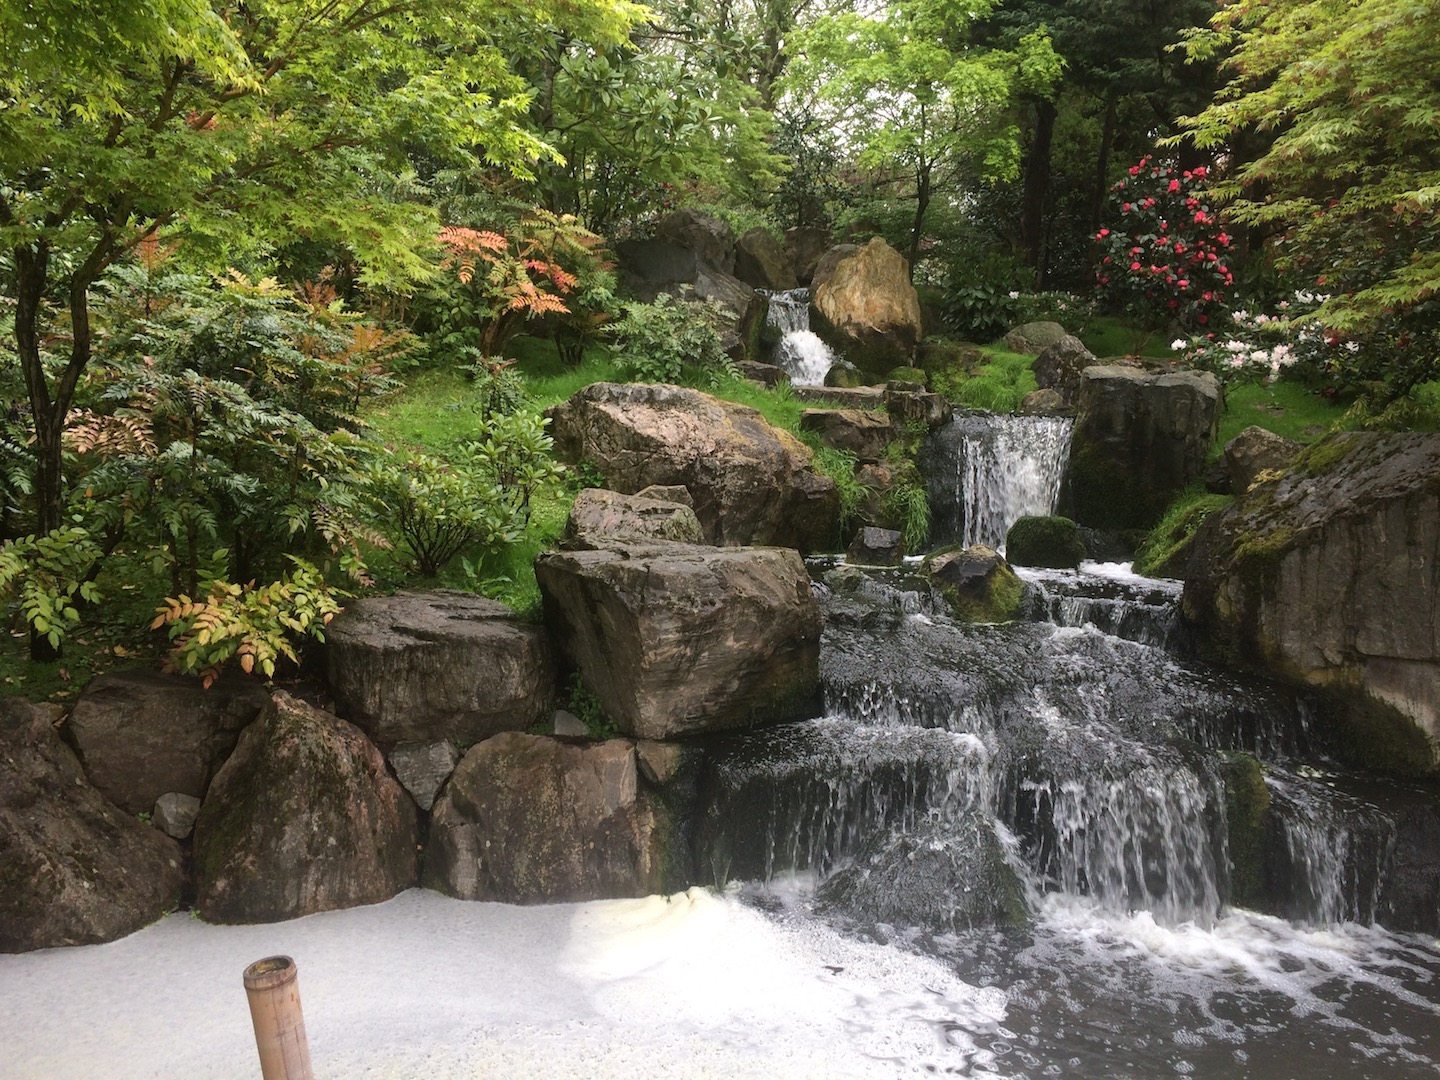 A 3 tiered stone waterfall descends into a garden pond of Koi fish.